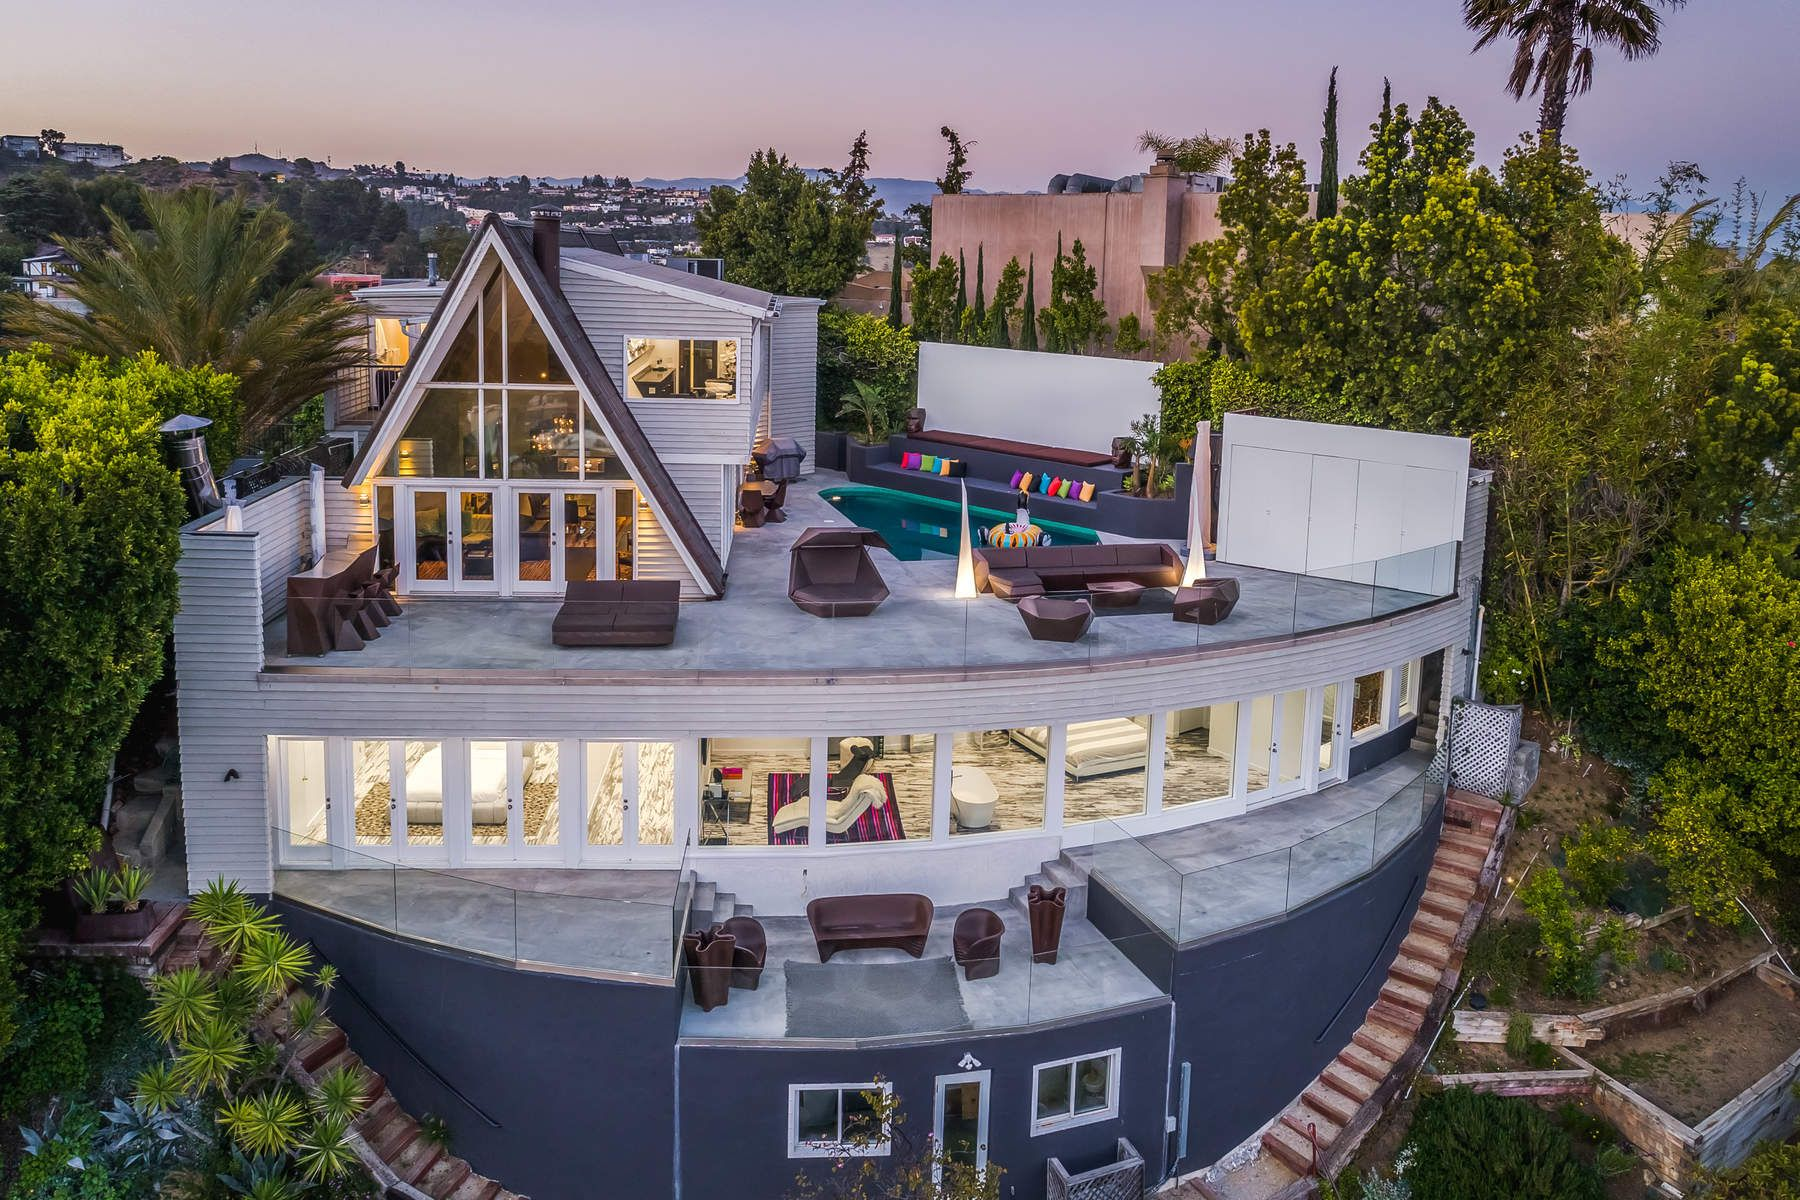 Hollywood Hills - Incredible house with a panoramic view of Los Angeles.3 Bed | 4 Bath | 2,910 Sq.Ft. (270 m2)$8,000/week.